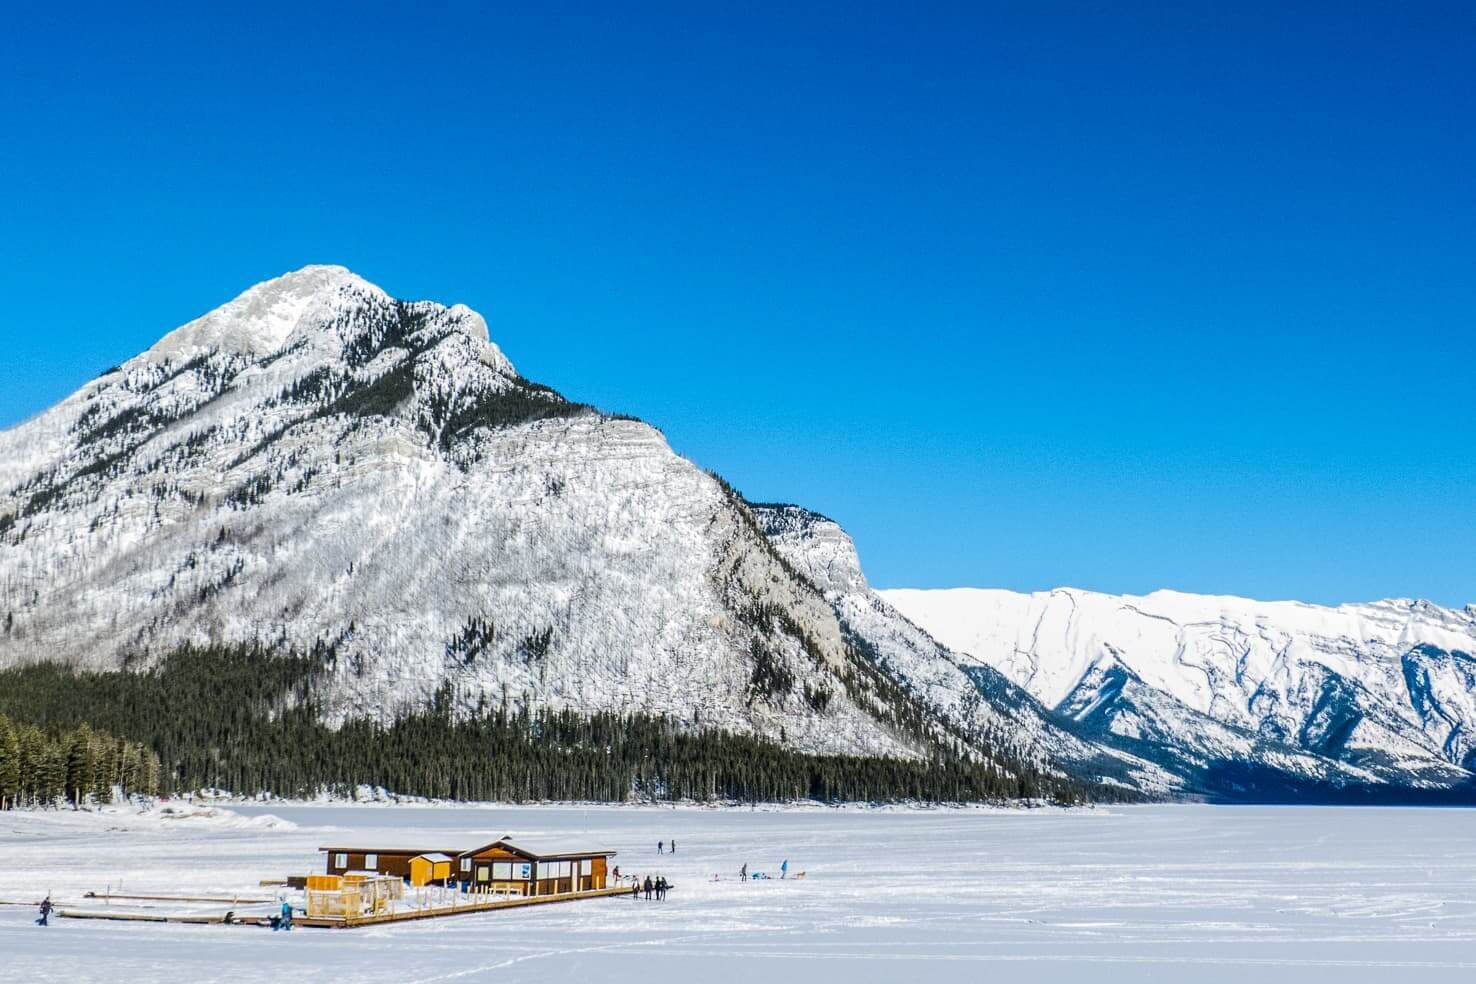 100 best things to do in Banff National Park, Canada - Snow shoeing around Banff & Lake Louise